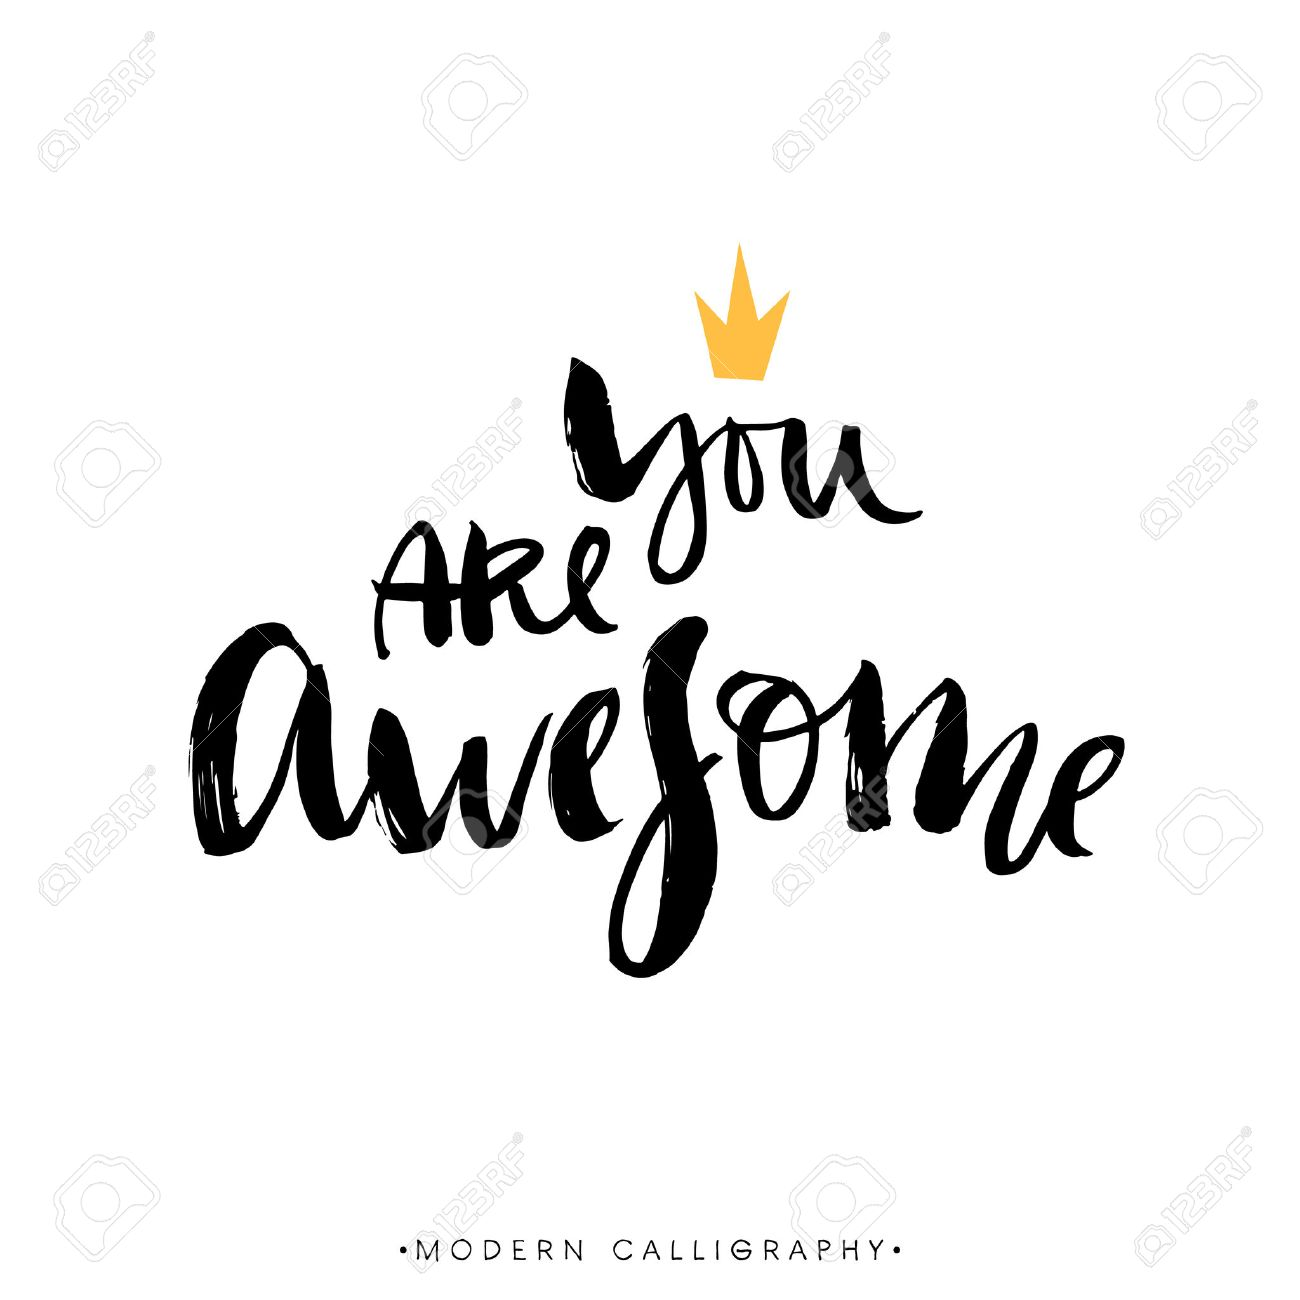 hight resolution of you are awesome modern brush calligraphy handwritten ink lettering hand drawn design elements